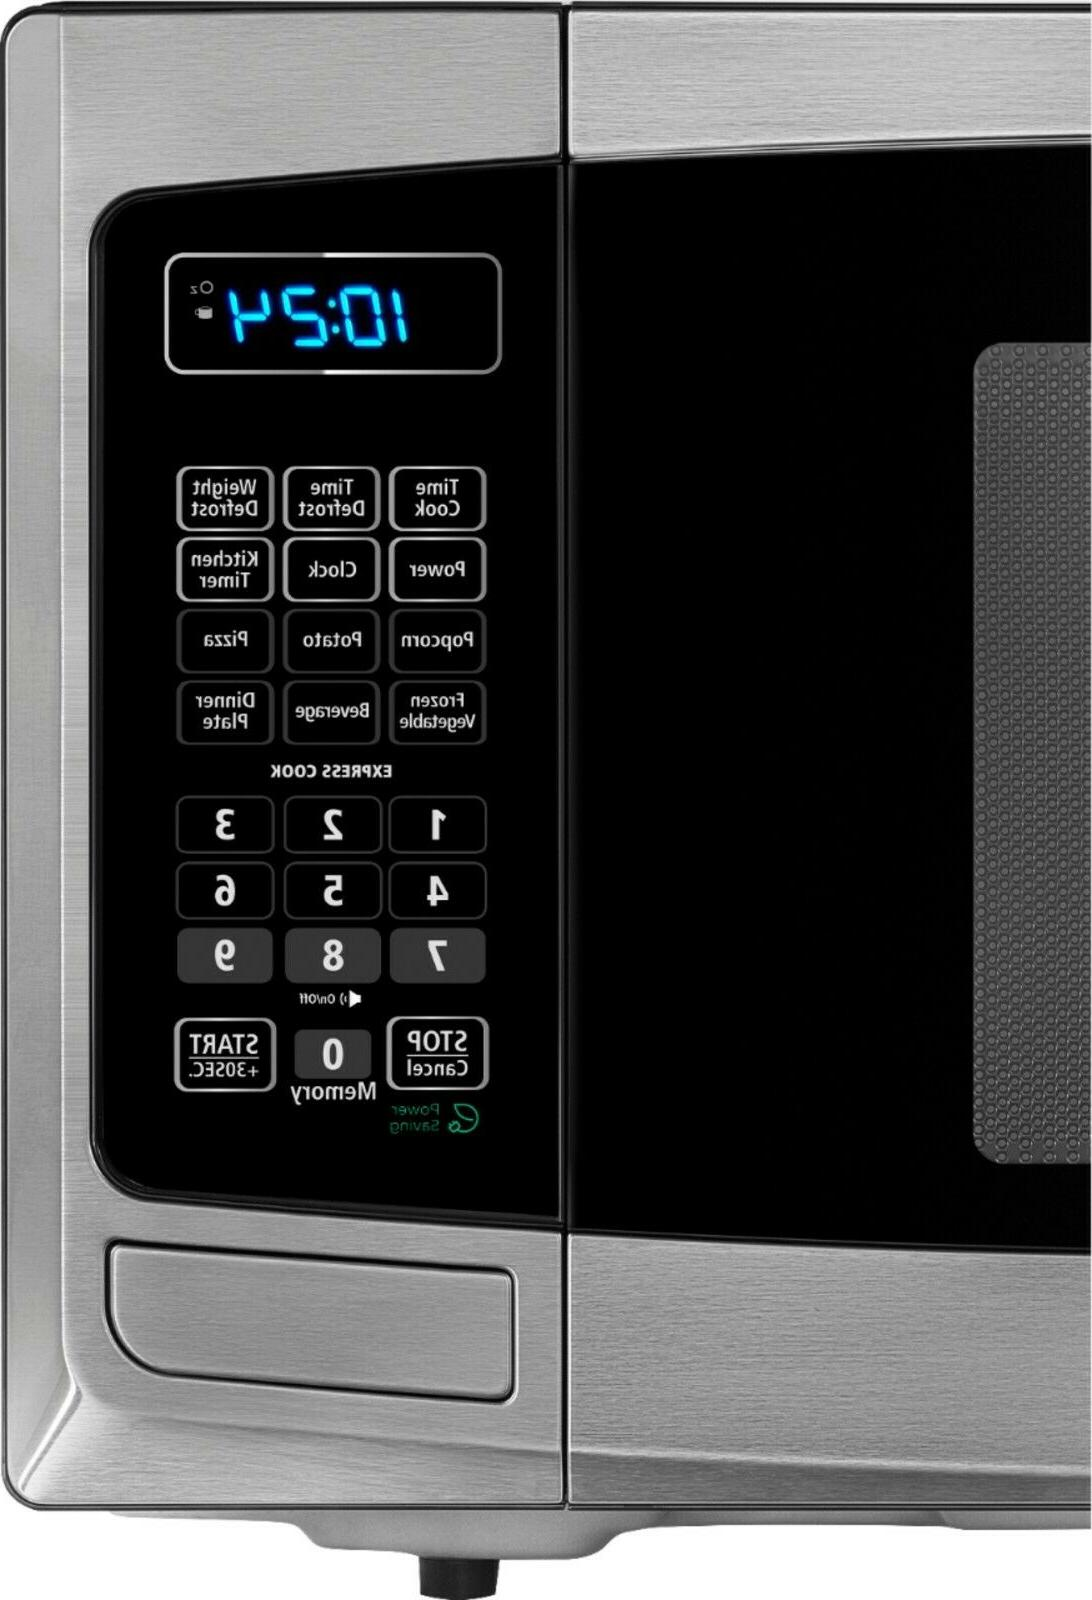 Compact Microwave Ft. Electronic Display